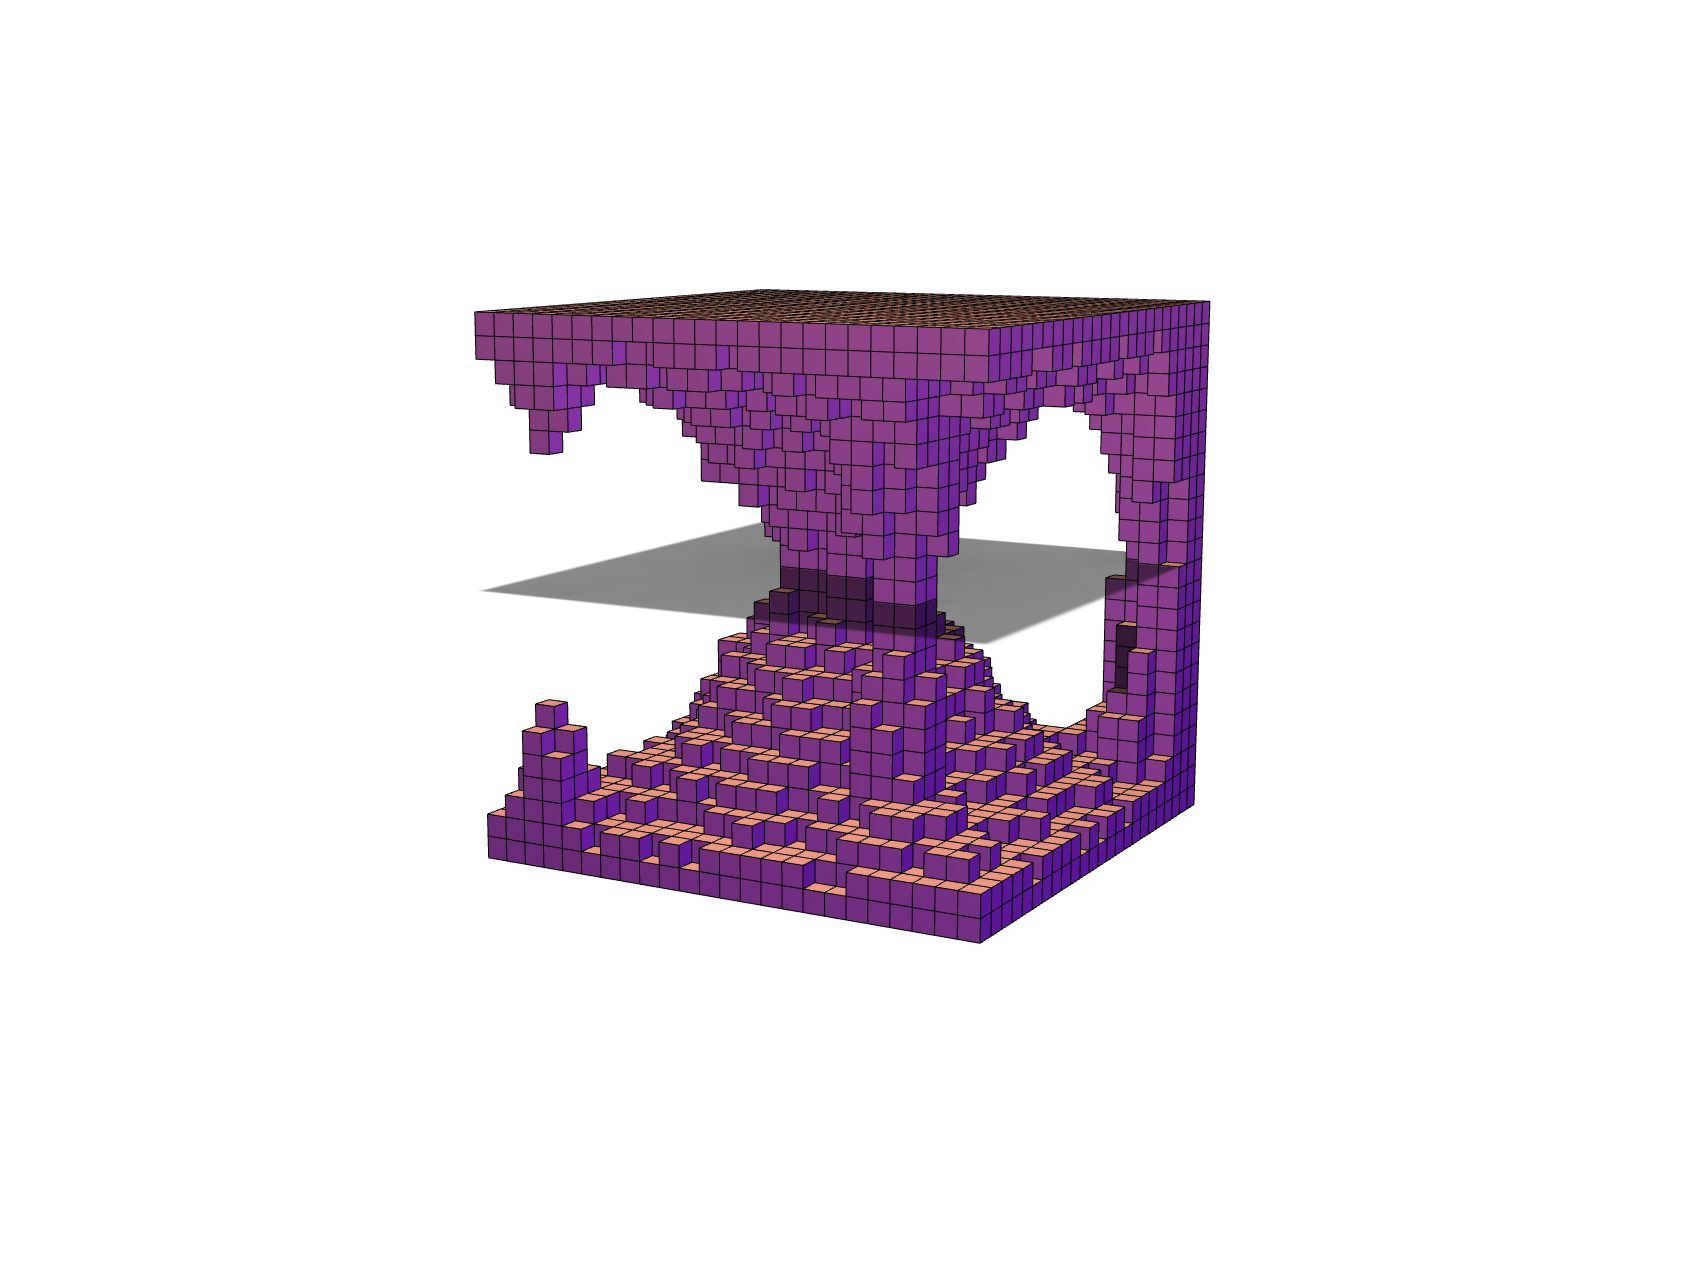 Cave Cube - 3D design by fmac on Feb 15, 2018